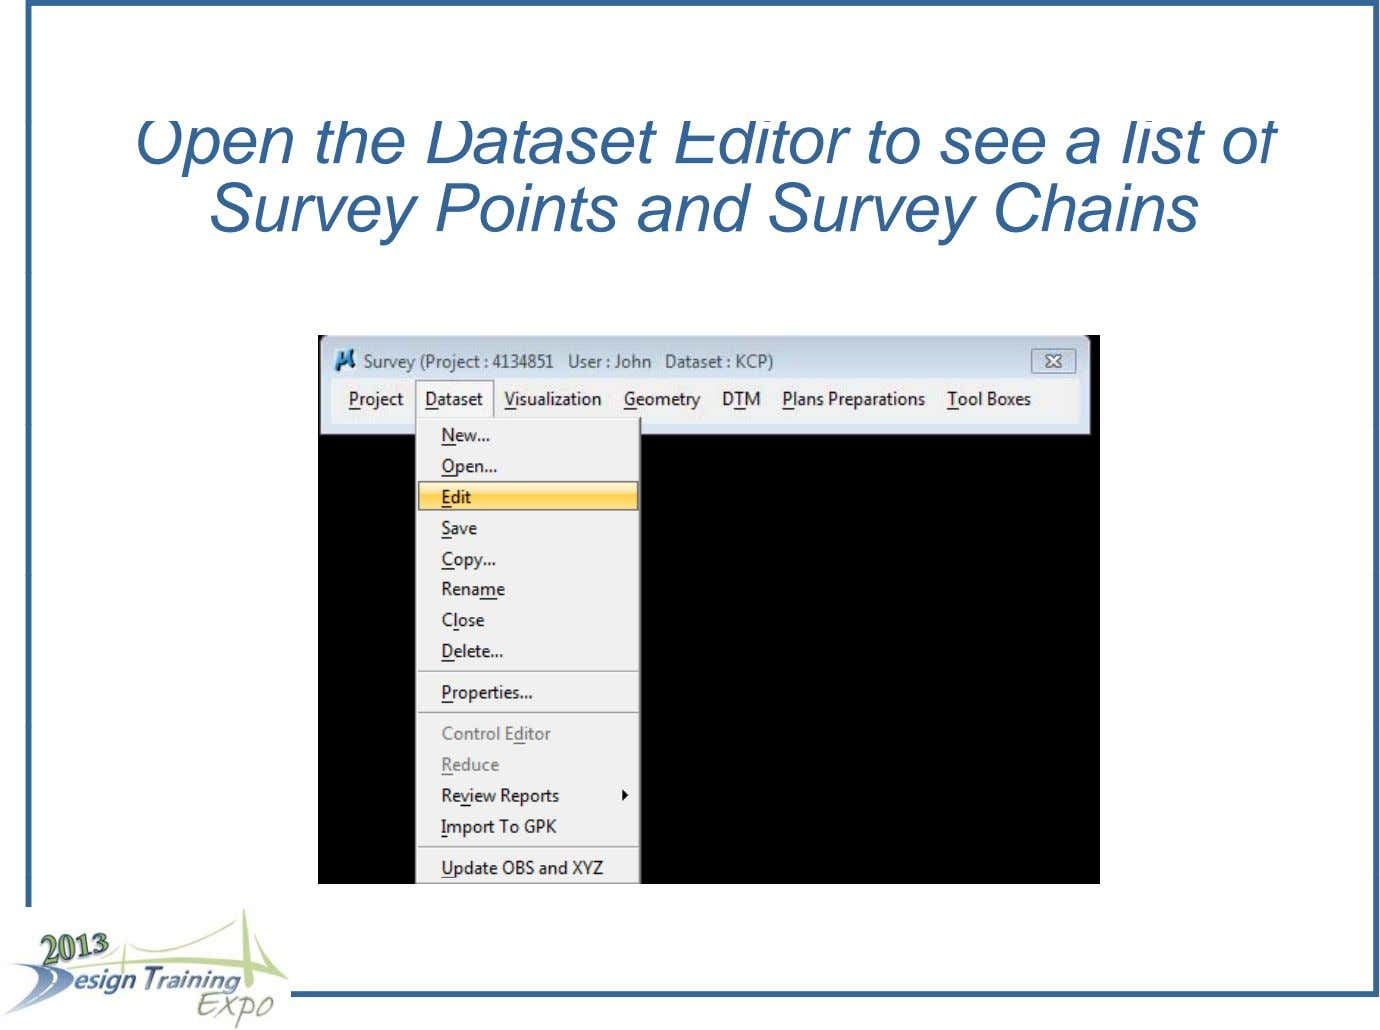 Open the Dataset Editor to see a list of Survey Points and Survey Chains